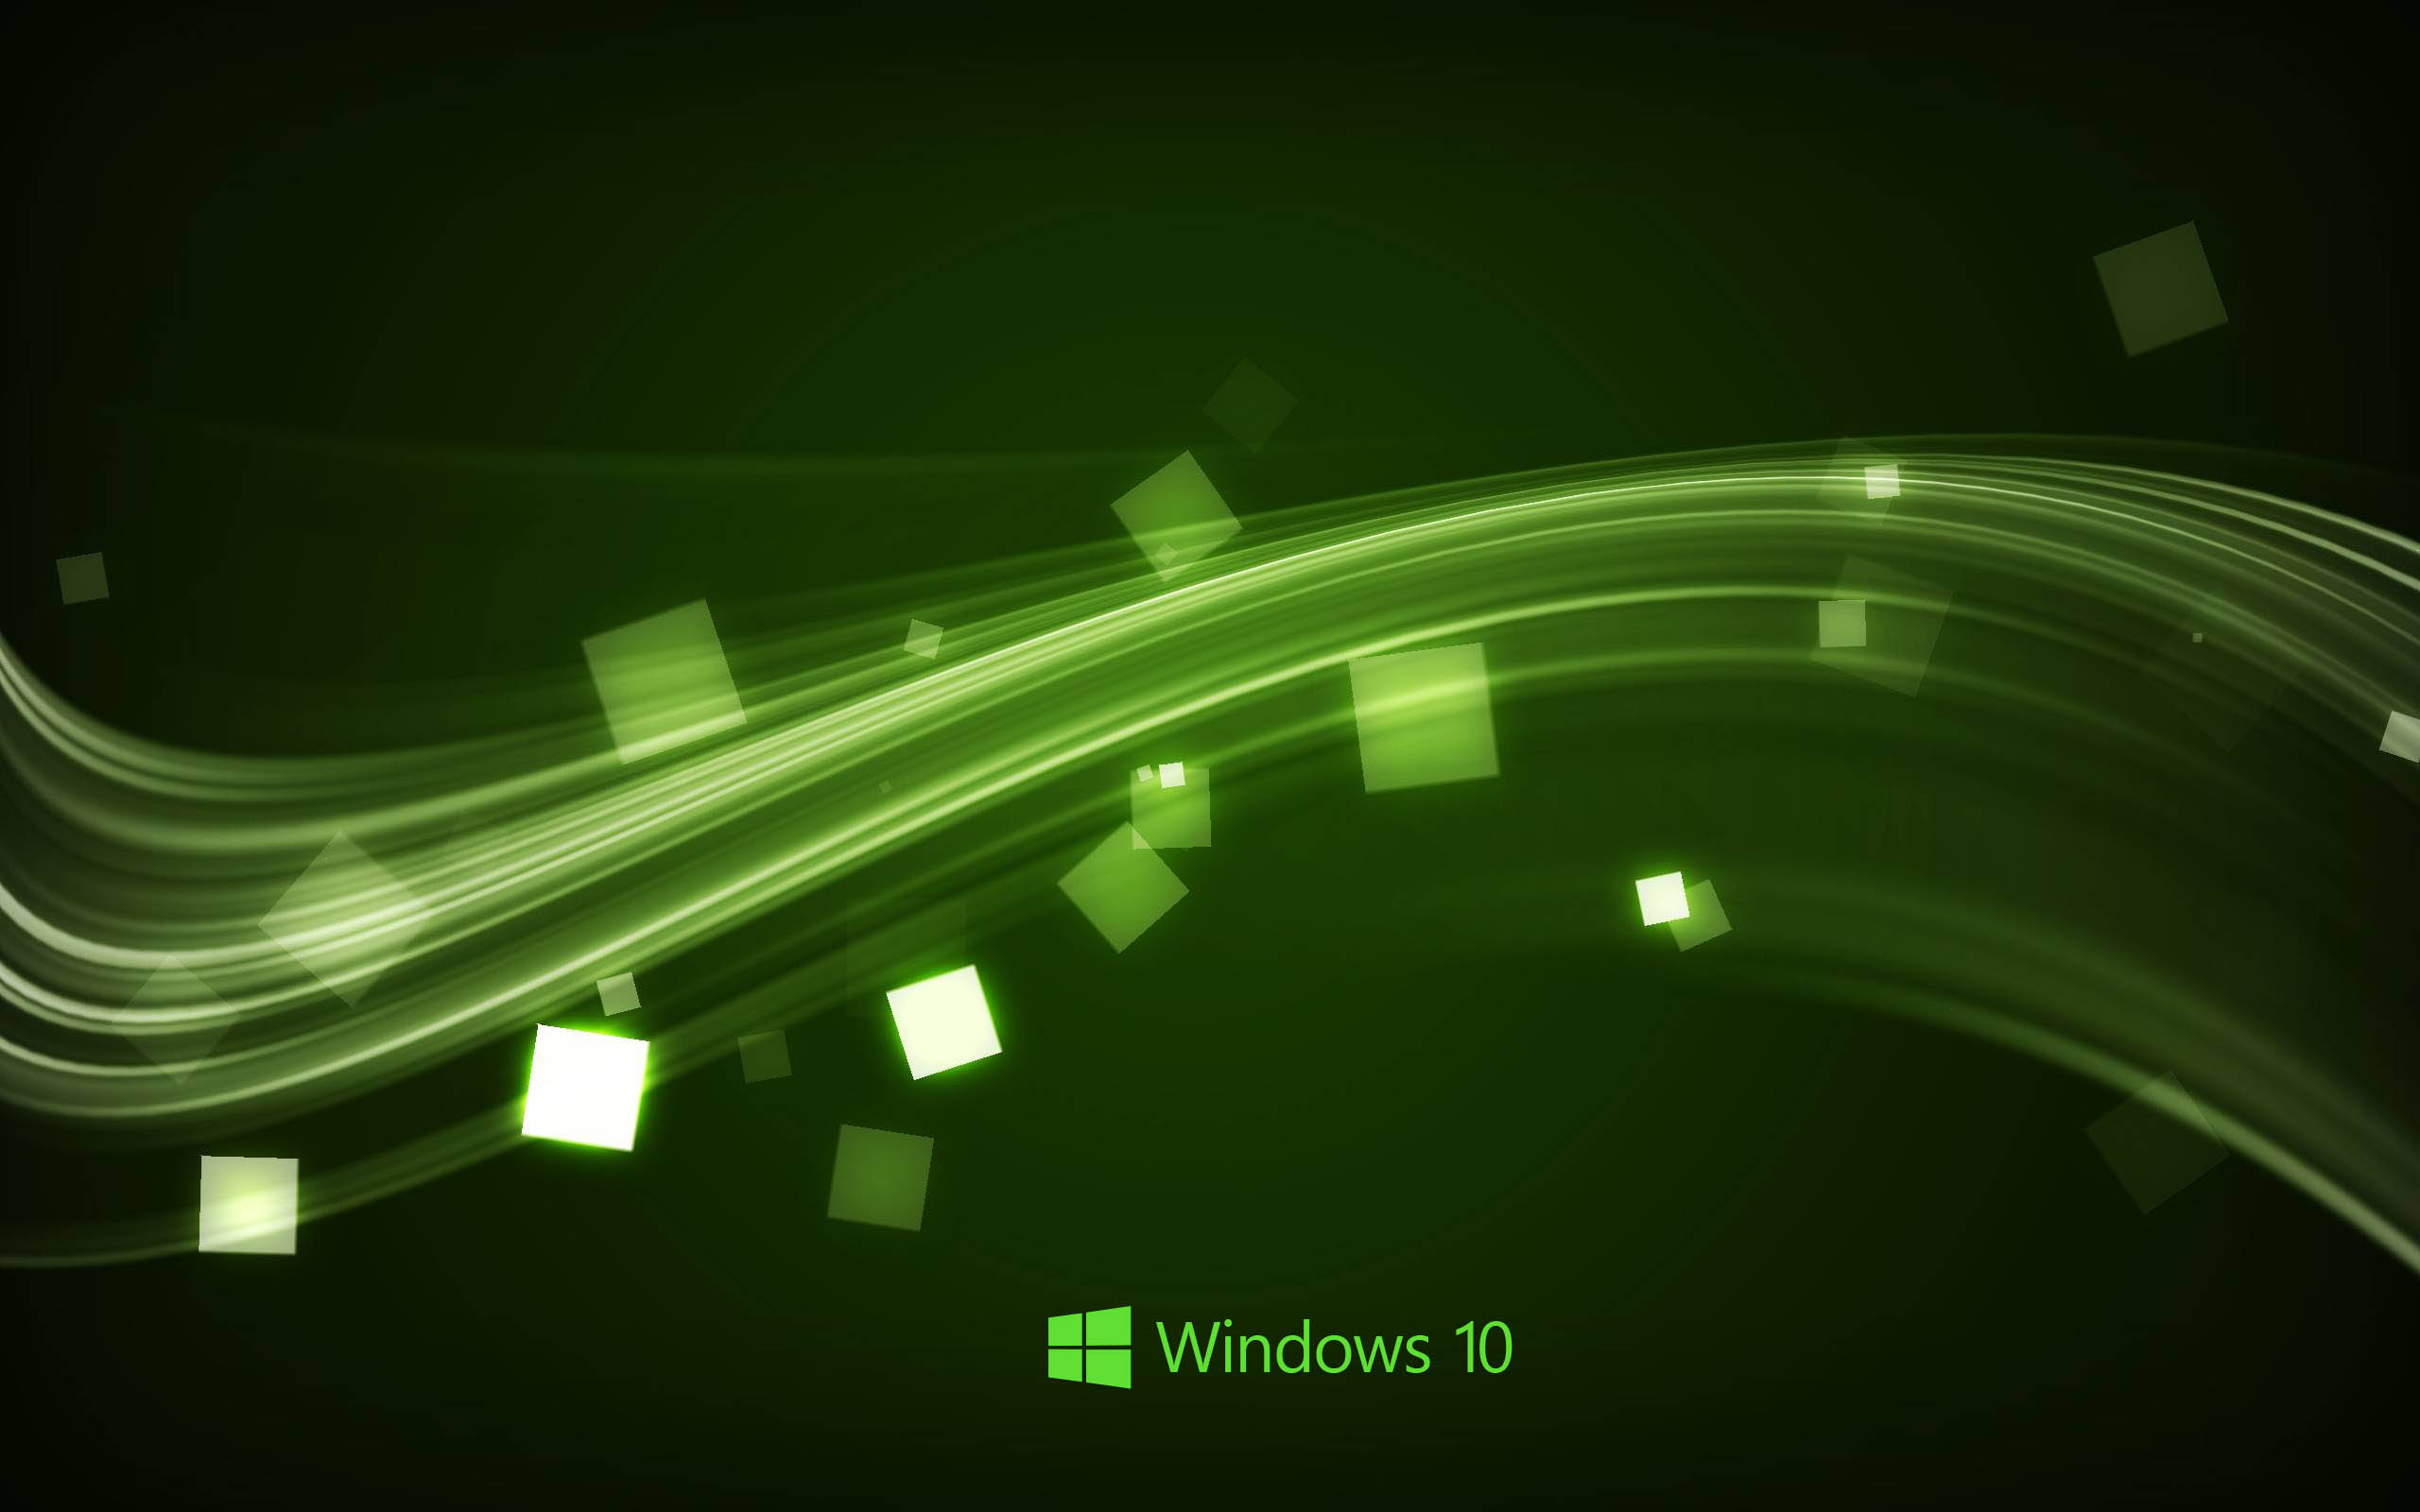 Green Windows 10 Wallpaper Images Wallpaper WallpaperLepi 2560x1600